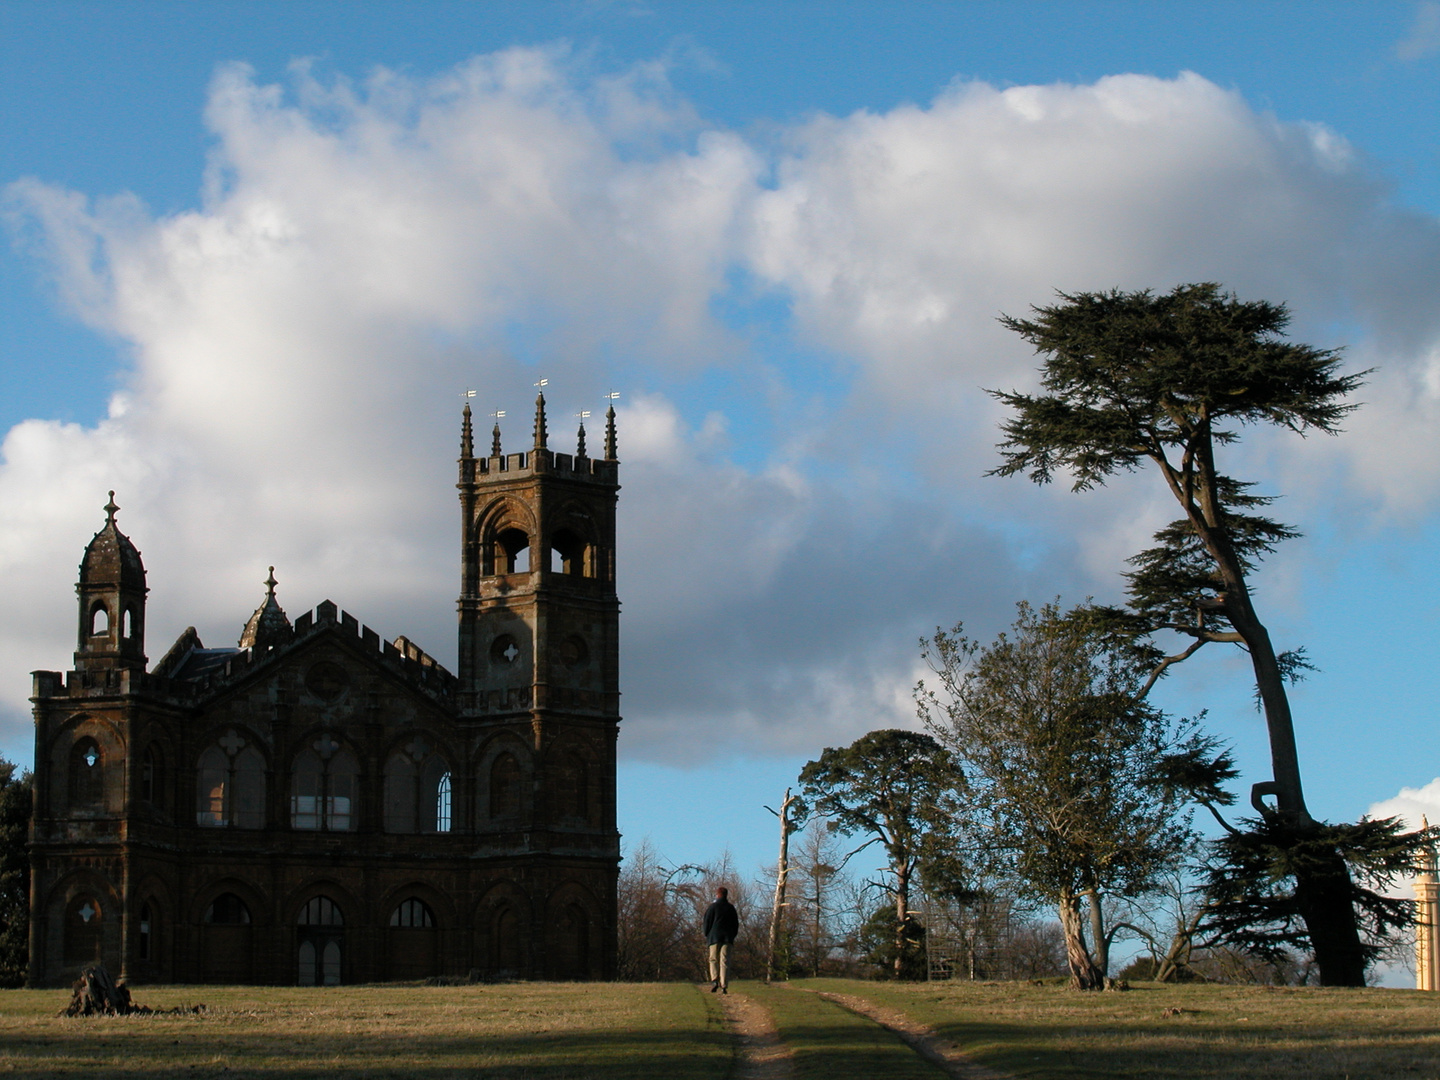 Stowe Park, The Gothic Folly